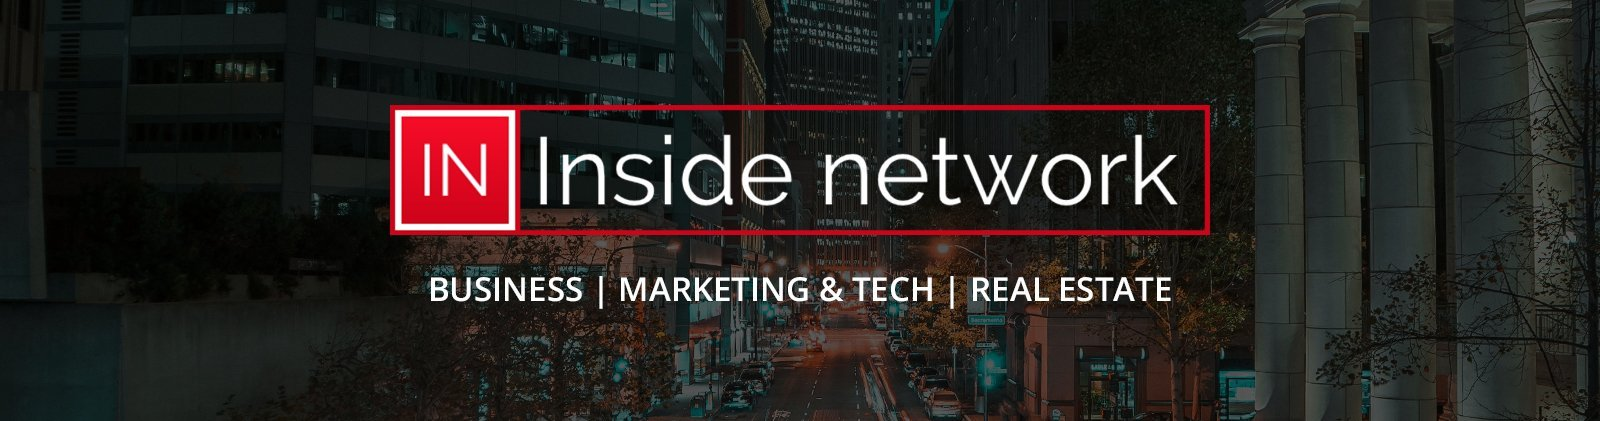 About insidenetwork.com